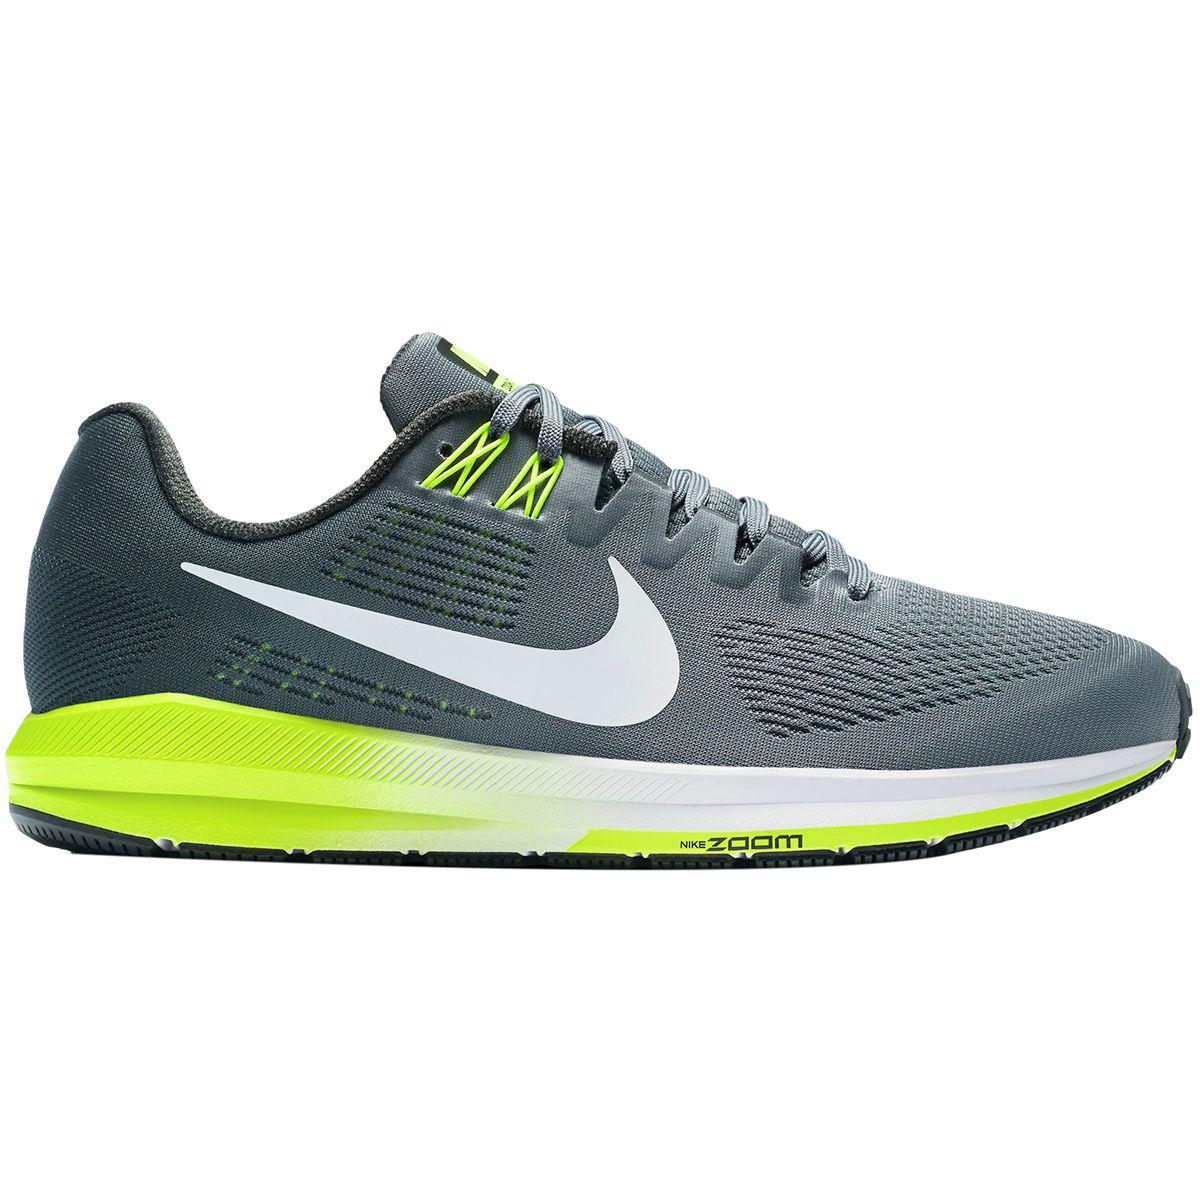 Nike Structure De Zoom De L'air 20 Blindage Bas-tops & Chaussures h7Nkc9k